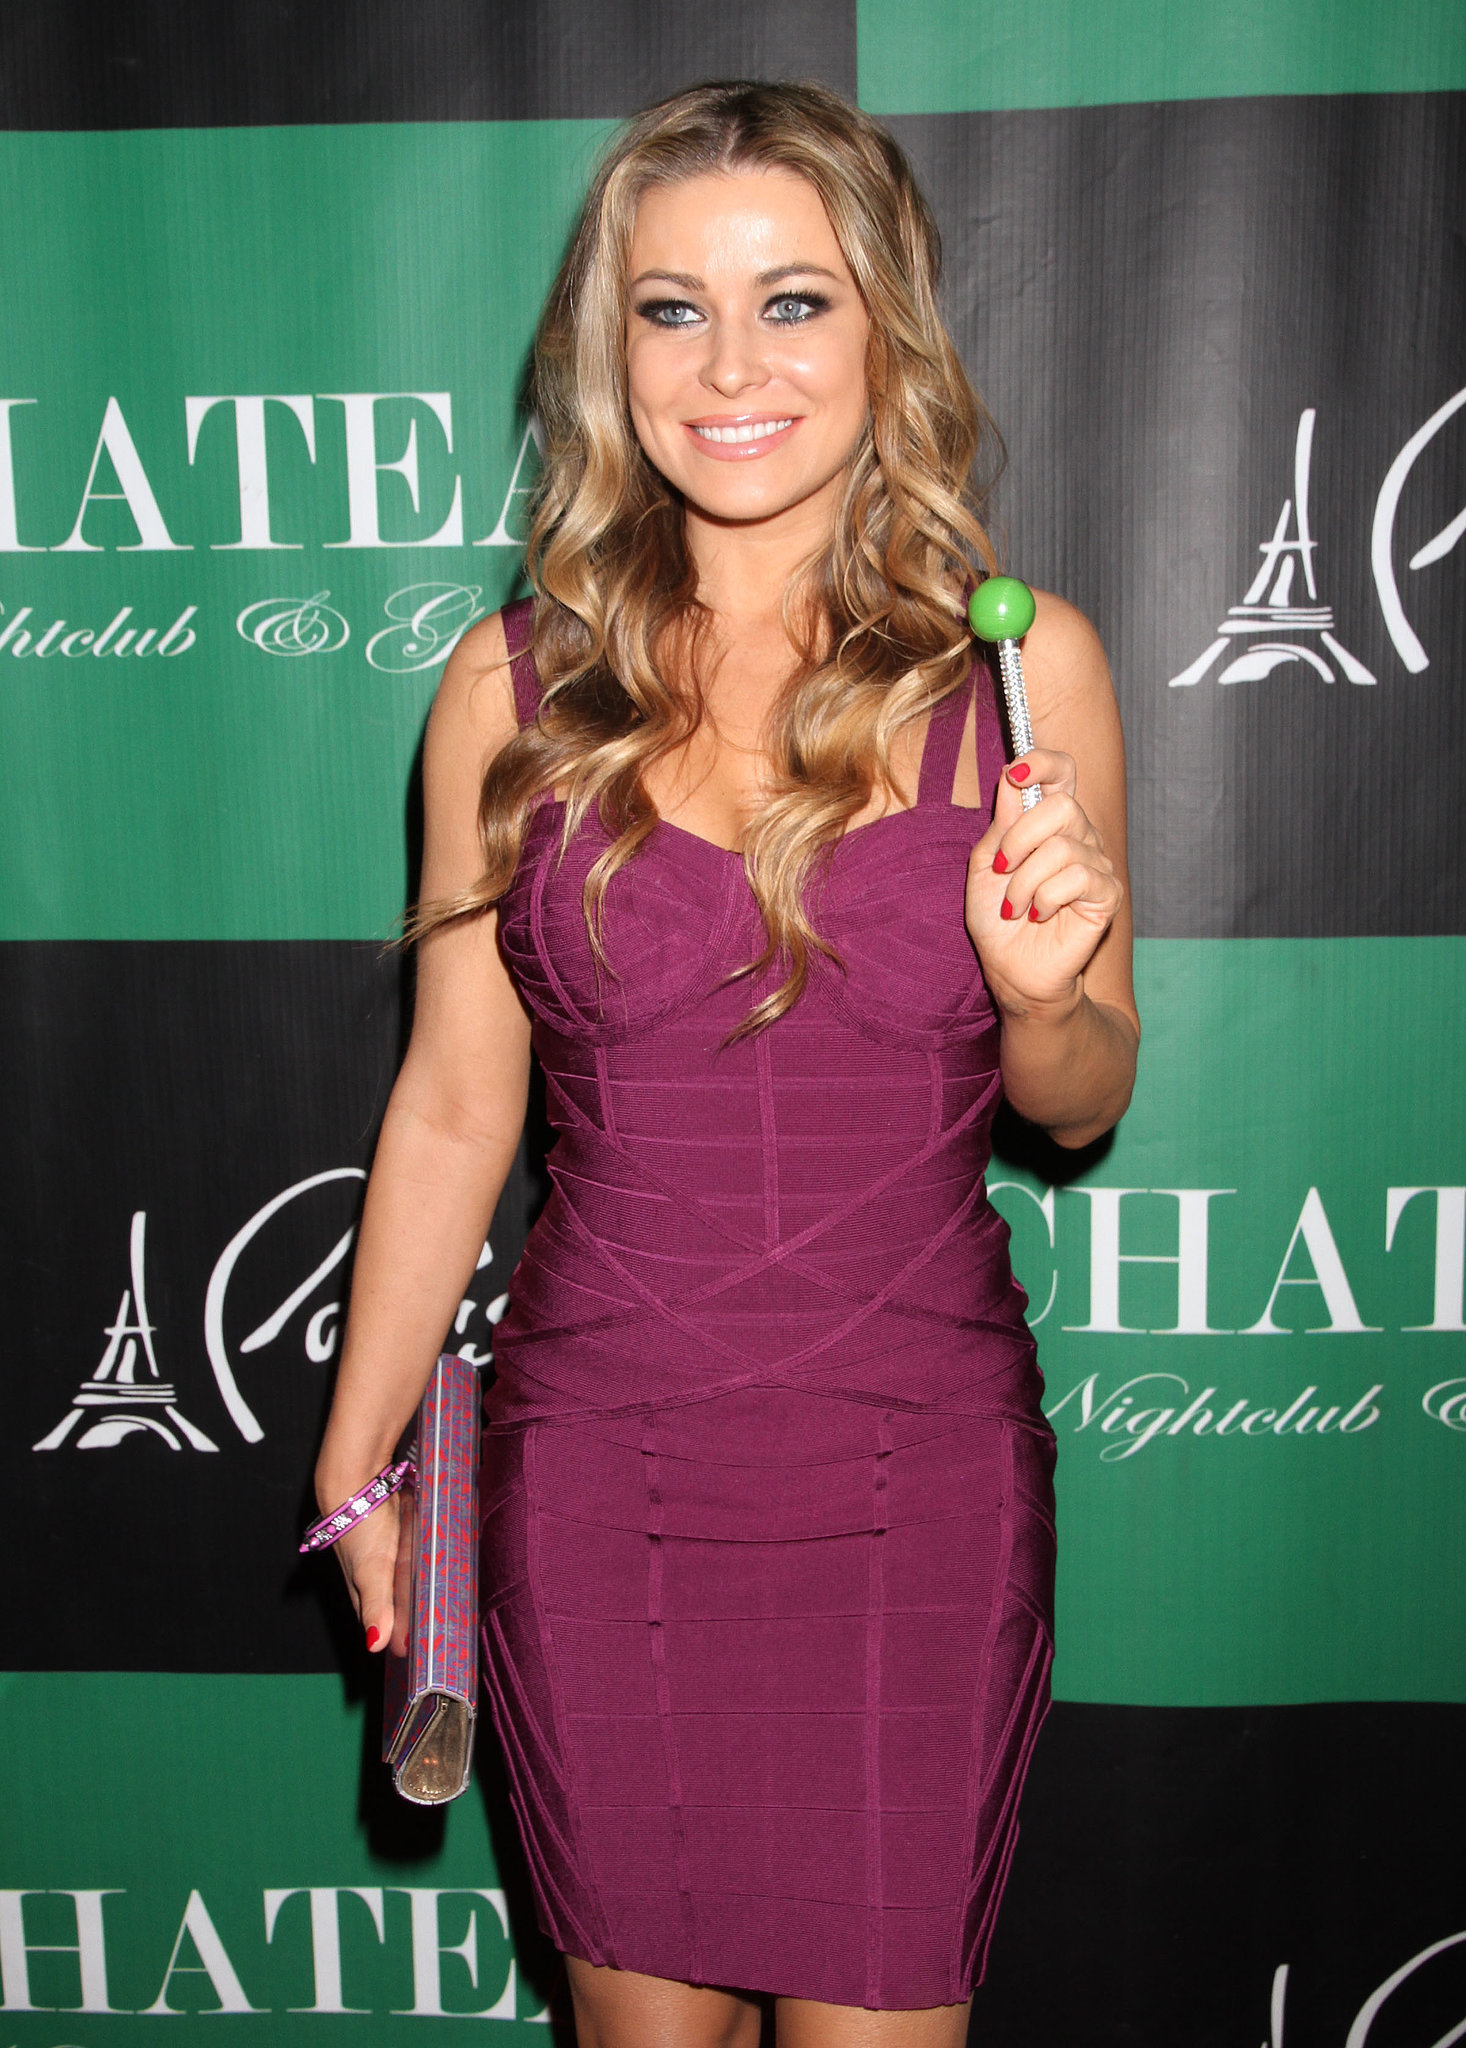 Carmen Electra posed on the red carpet with a neon green lollipop in March 2012 for a St. Patrick's Day event in Las Vegas.